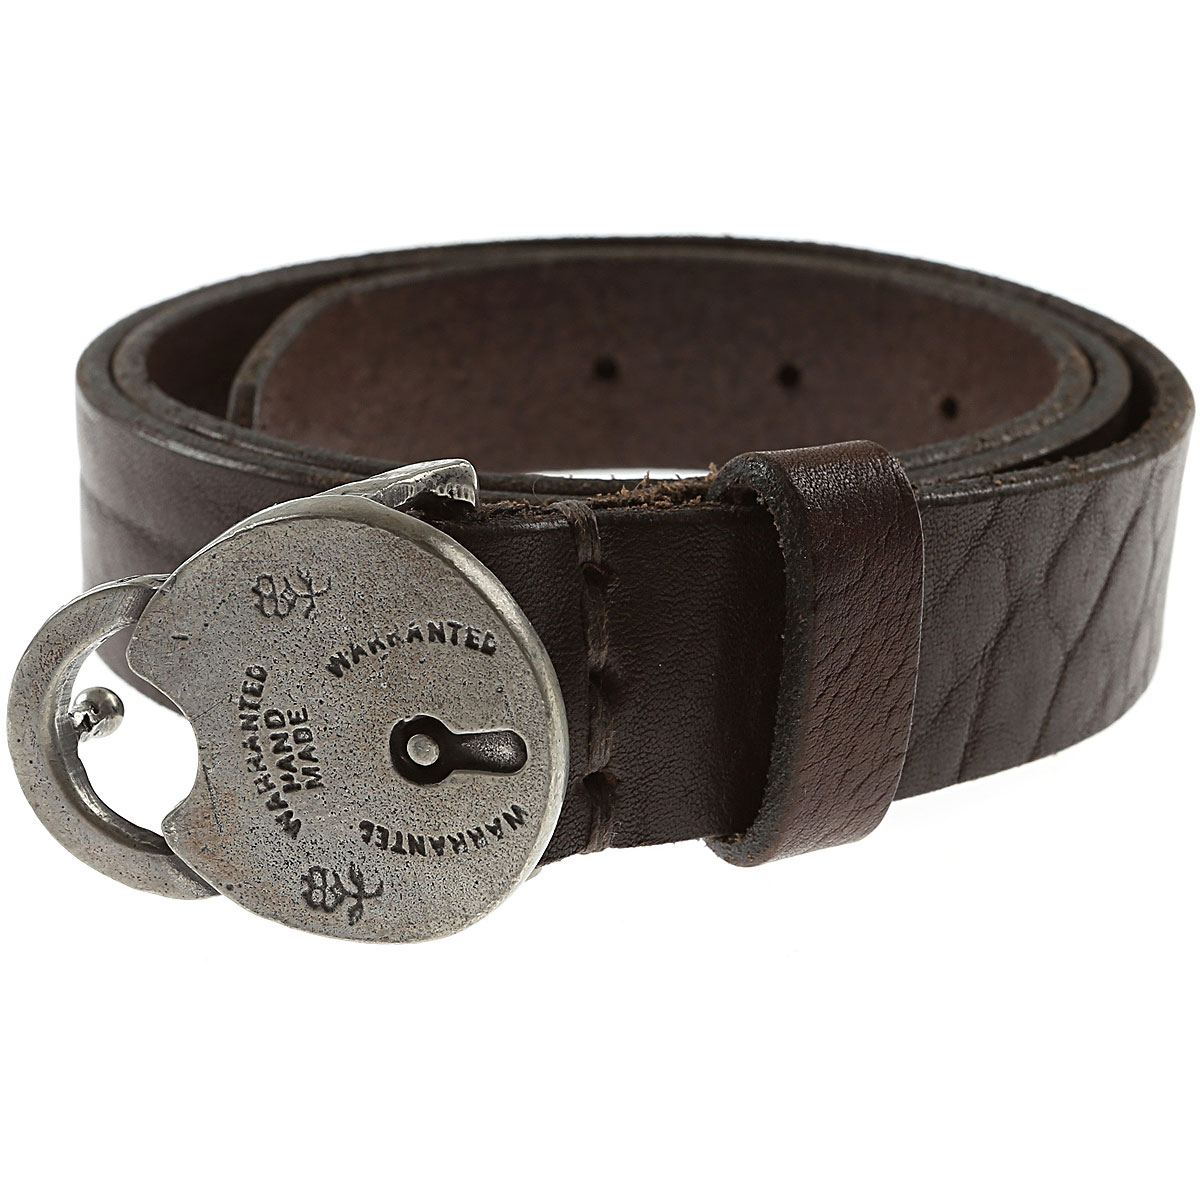 Paul Smith Mens Belts, Brown, Leather, 2017, 34 36 38 40